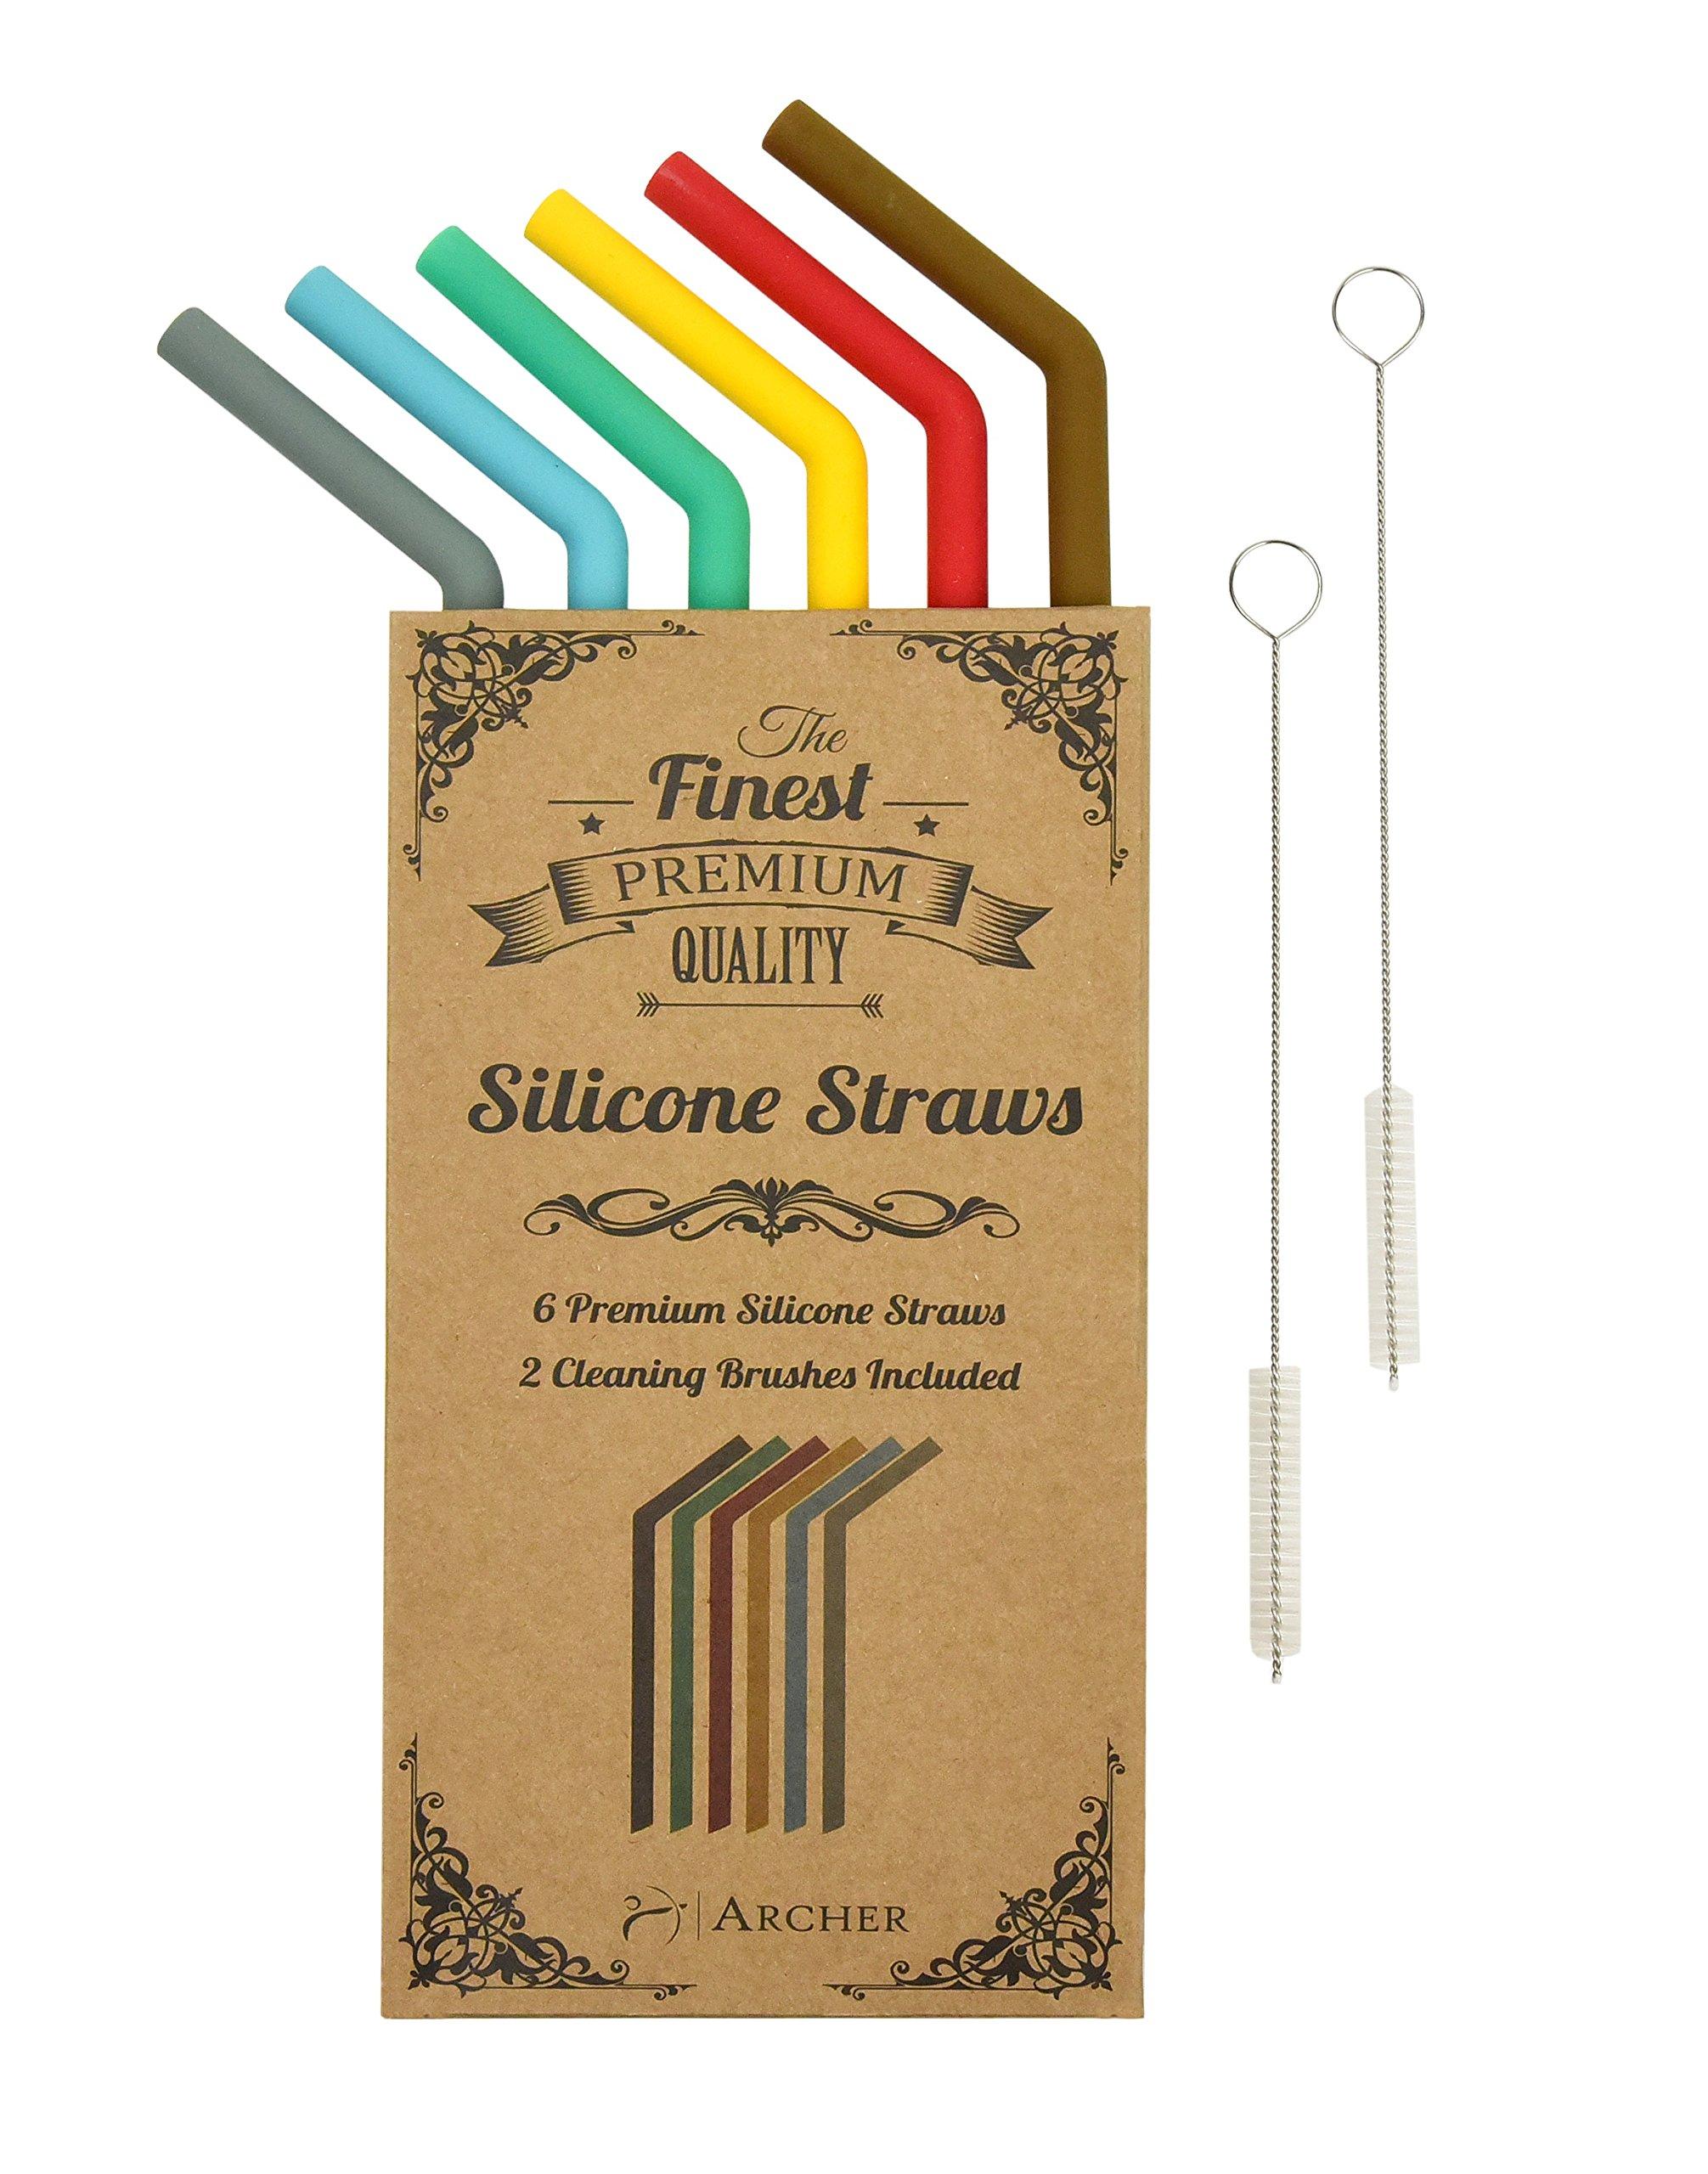 Reusable Straws - Silicone Drinking Straws by Archer - 10 inch Extra Long Flexible Smoothie RTIC Yeti Straws for 30 oz Tumbler - Vintage Colors - 6 x Silicone Straws 2 x Cleaning Brush - BPA Free